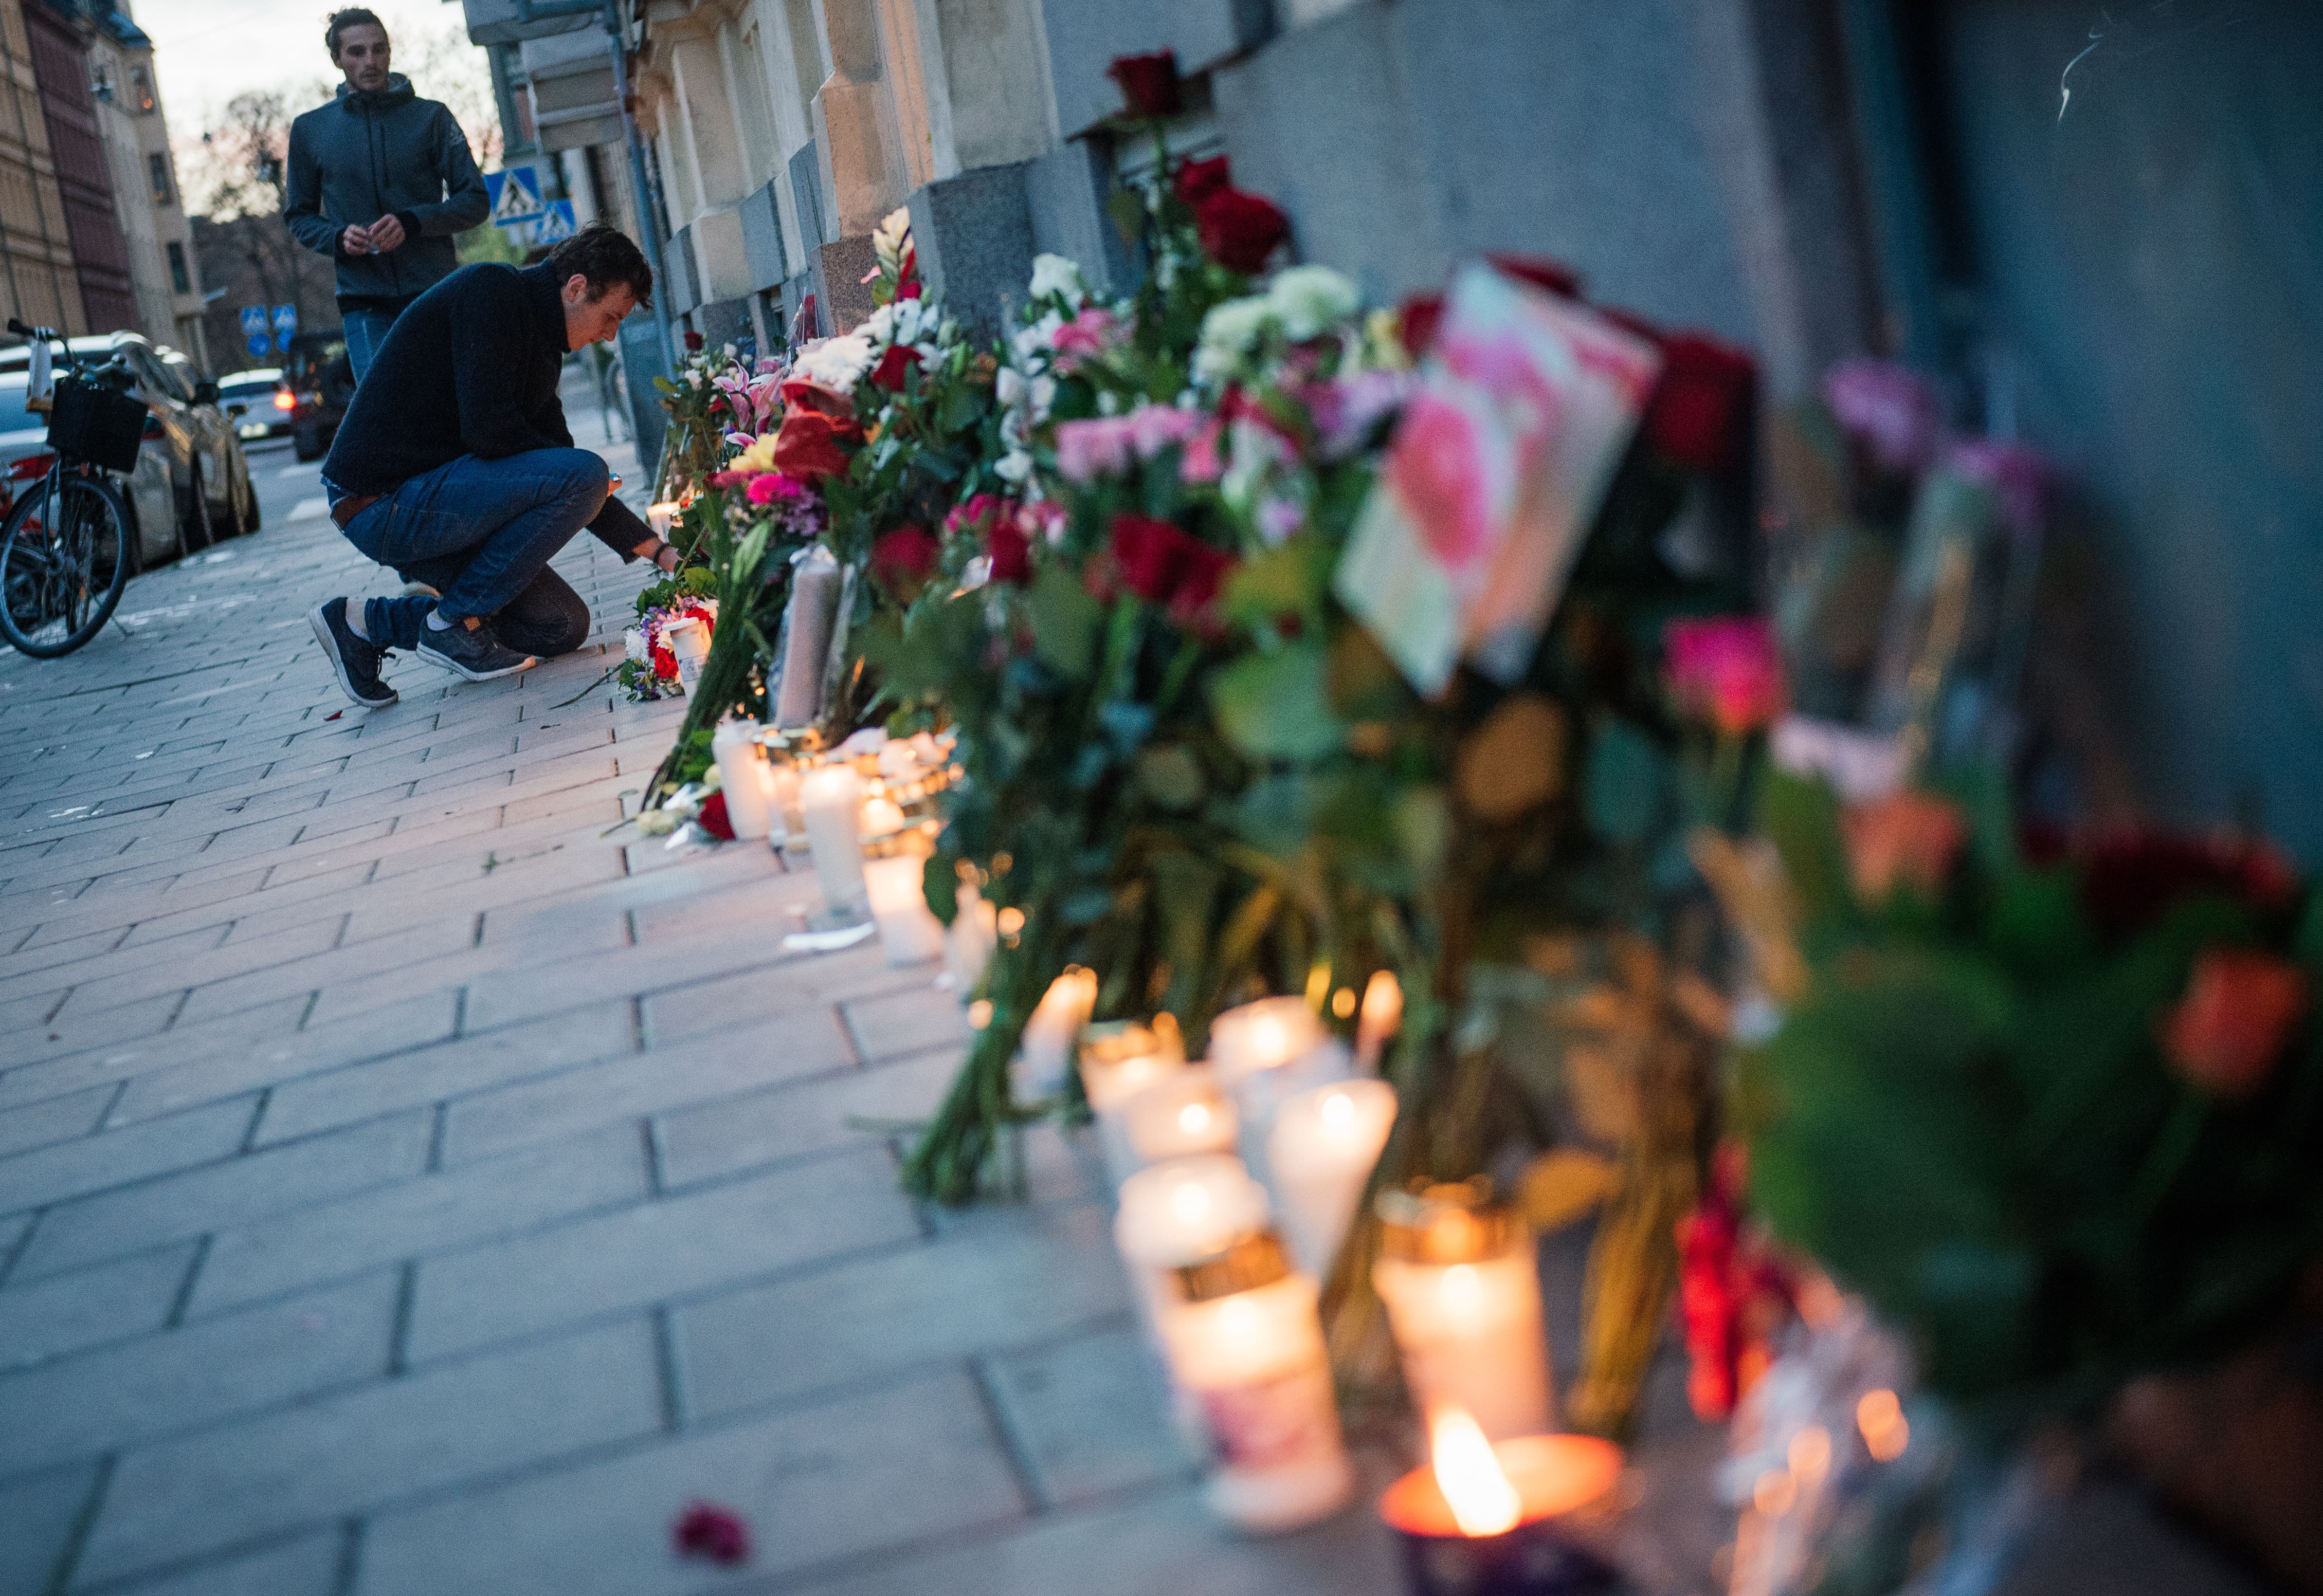 A man places candles and flowers outside the French embassy in Stockholm, Sweden on Nov. 14, 2015.